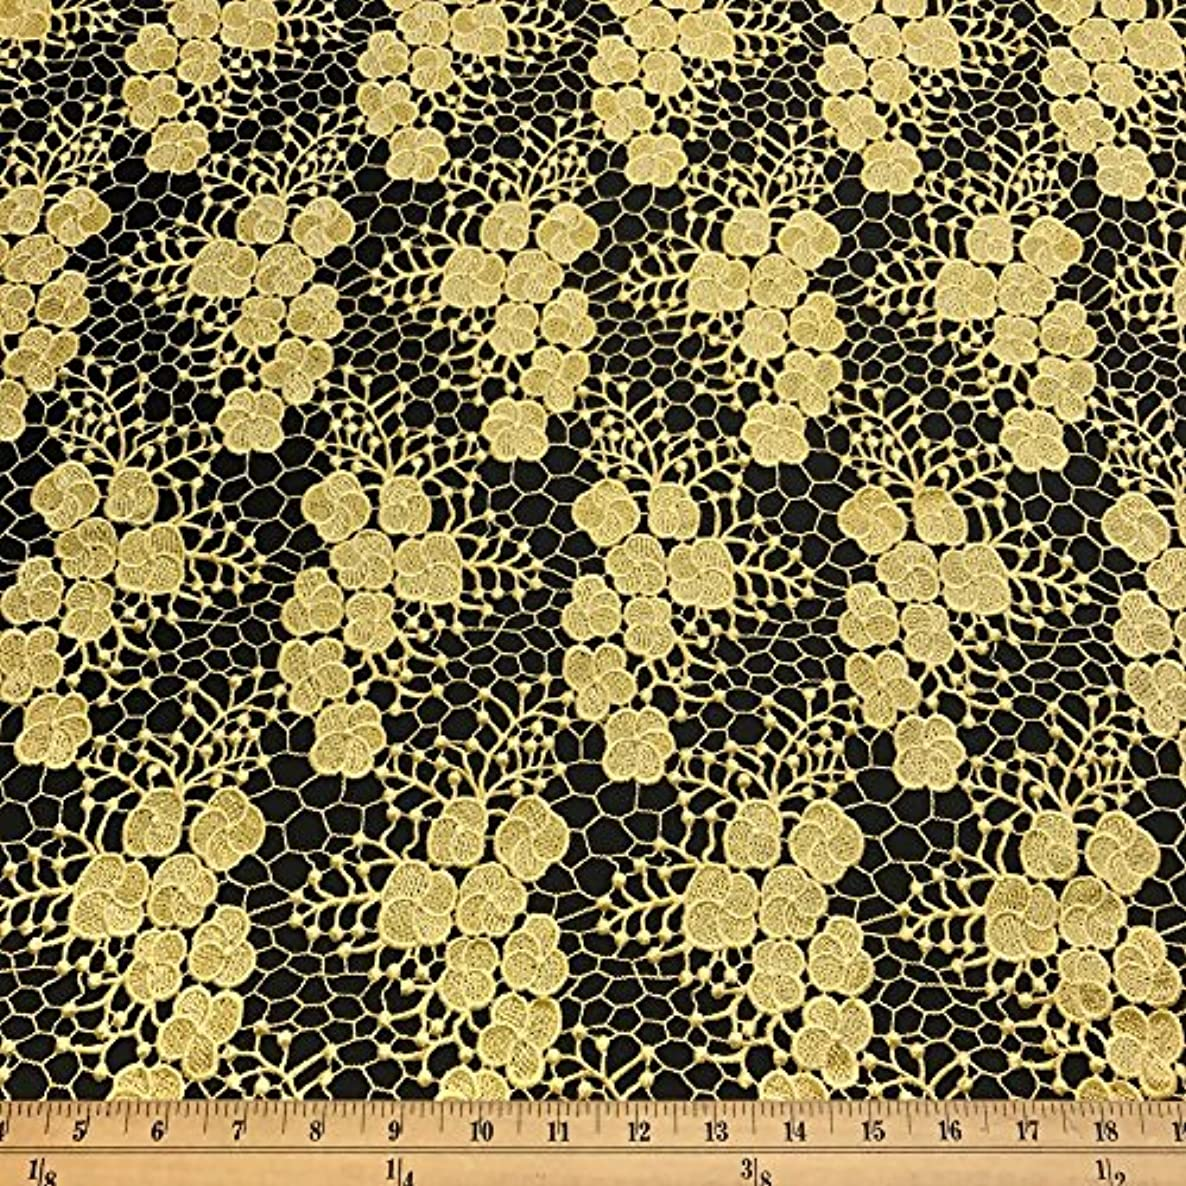 Azalea Guipure Corded French Lace Embroidery Fabric 52